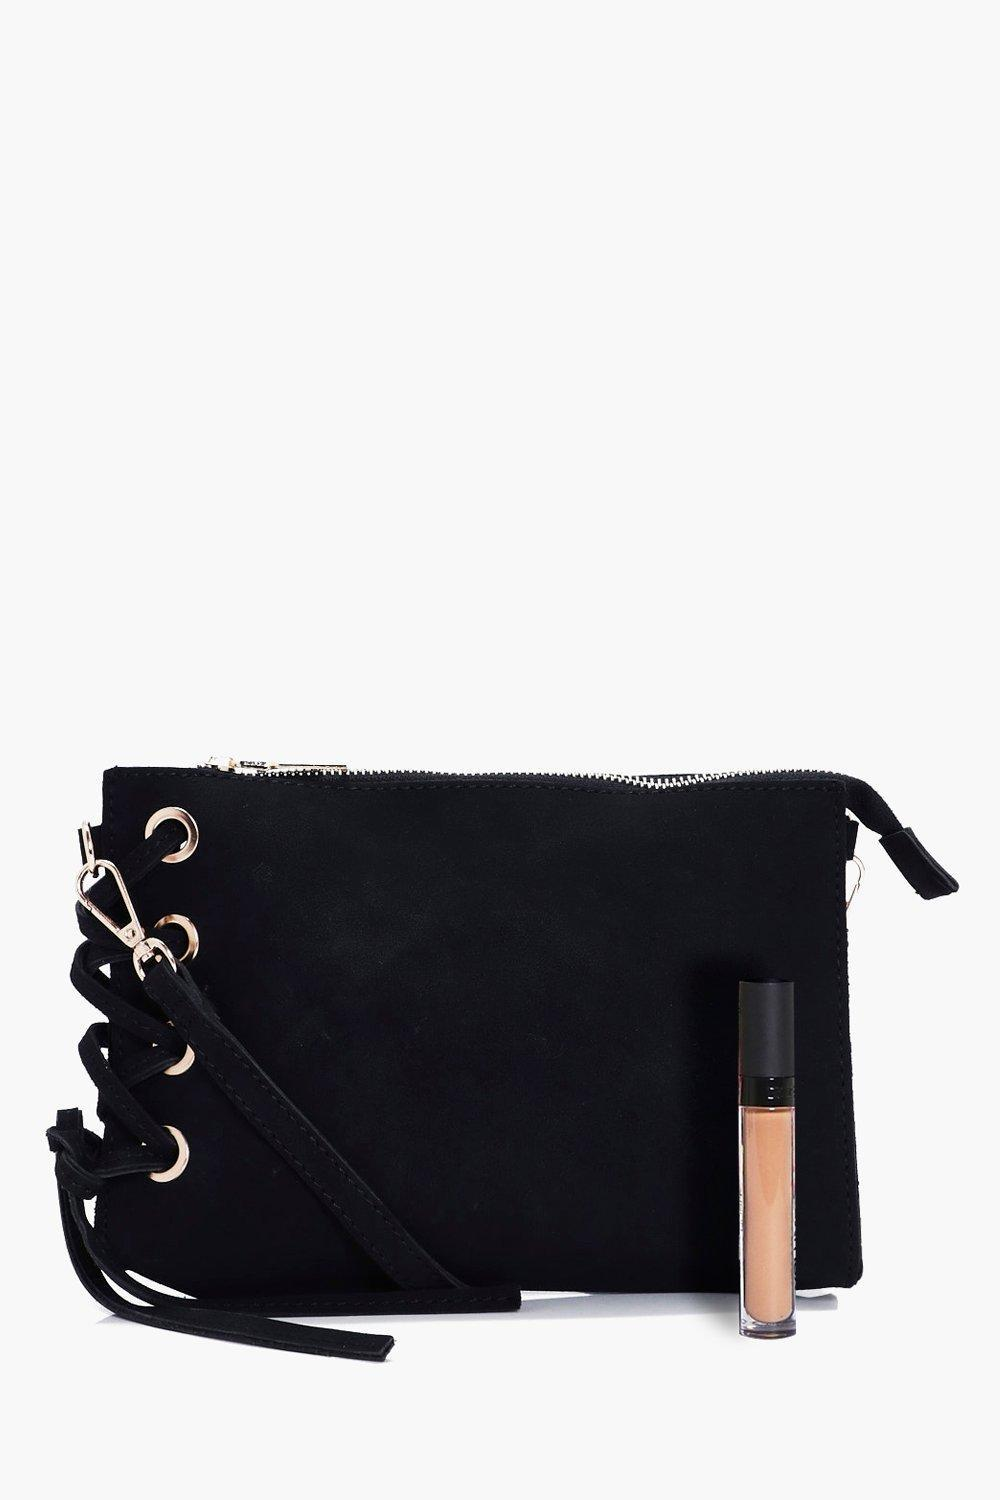 Boohoo Evie Corset Lace Up Cross Body in Black